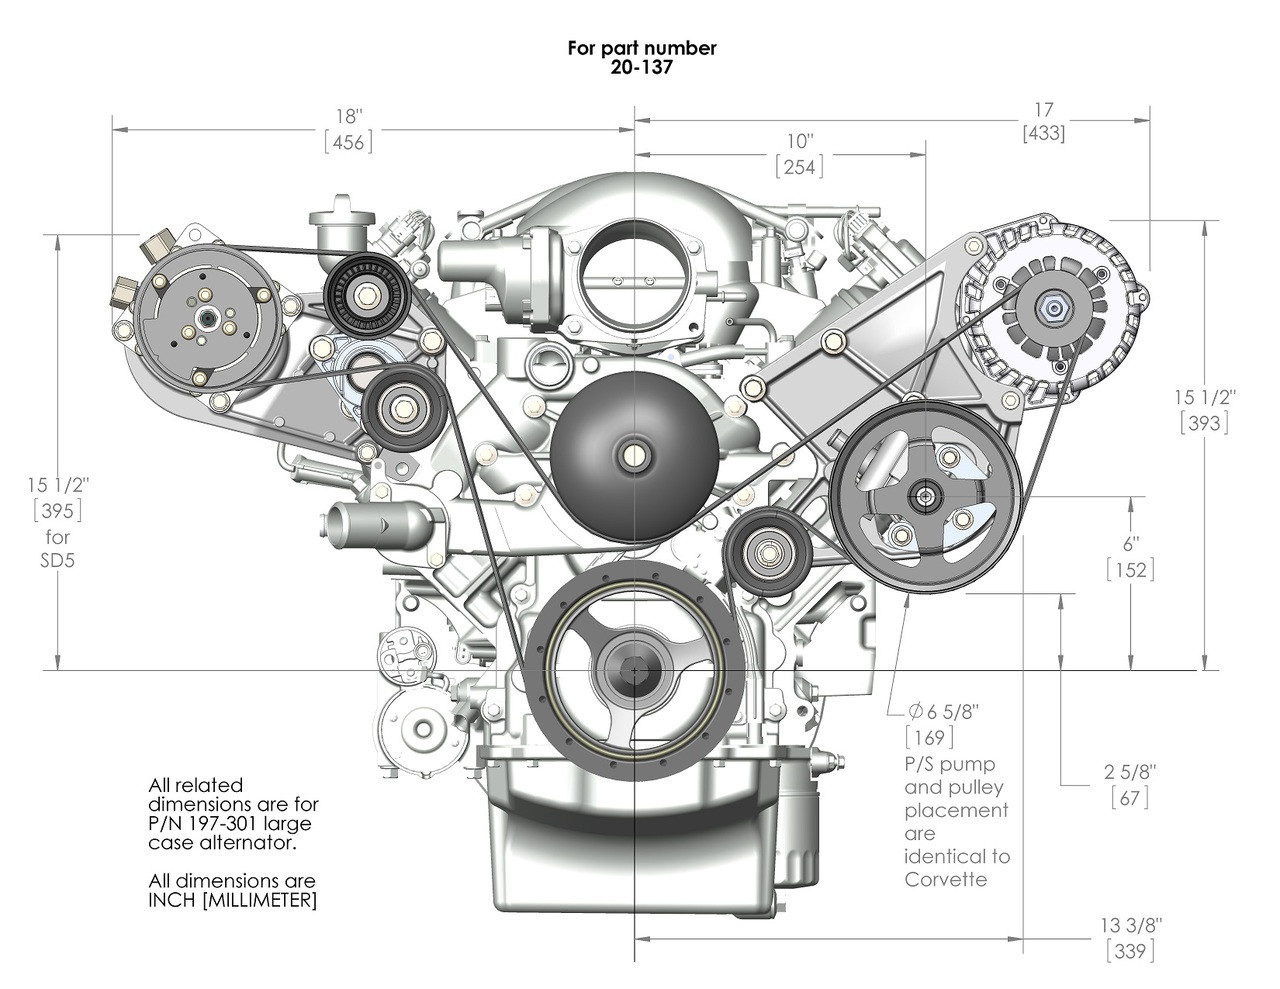 2006 Lincoln Zephyr Engine Diagram Wiring Library Buick Terraza Schematics Accessory 1 Ls Product Diagrams U2022